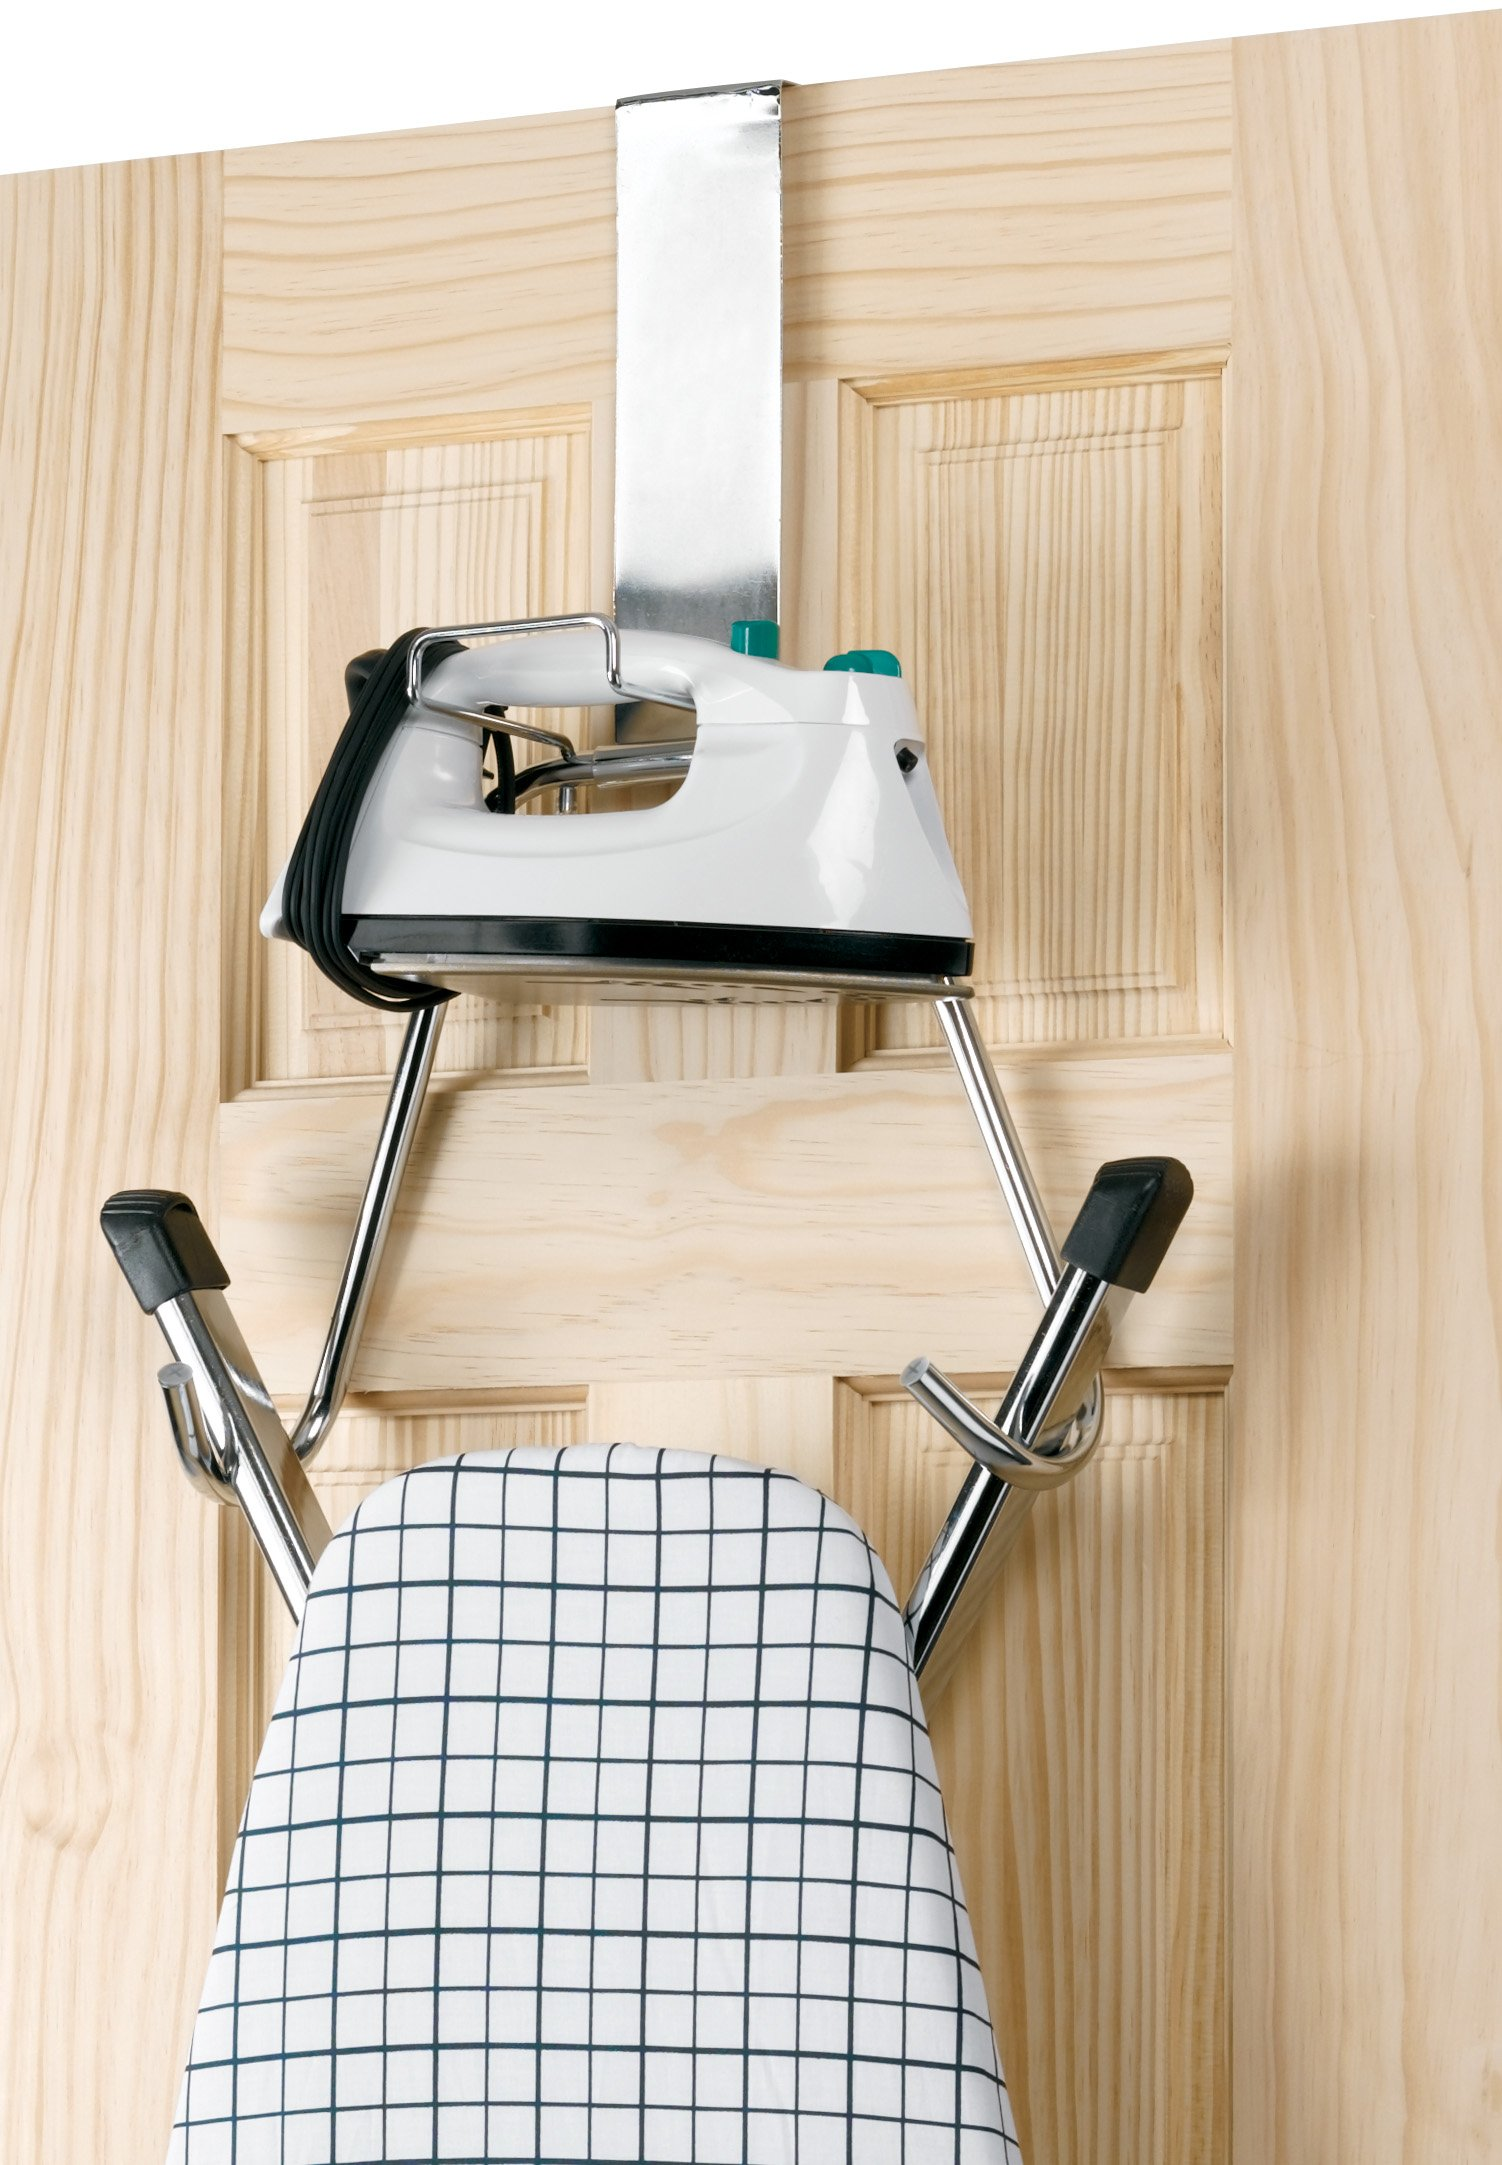 Polder 90617-05 Over the Door Iron and Board Holder - Chrome